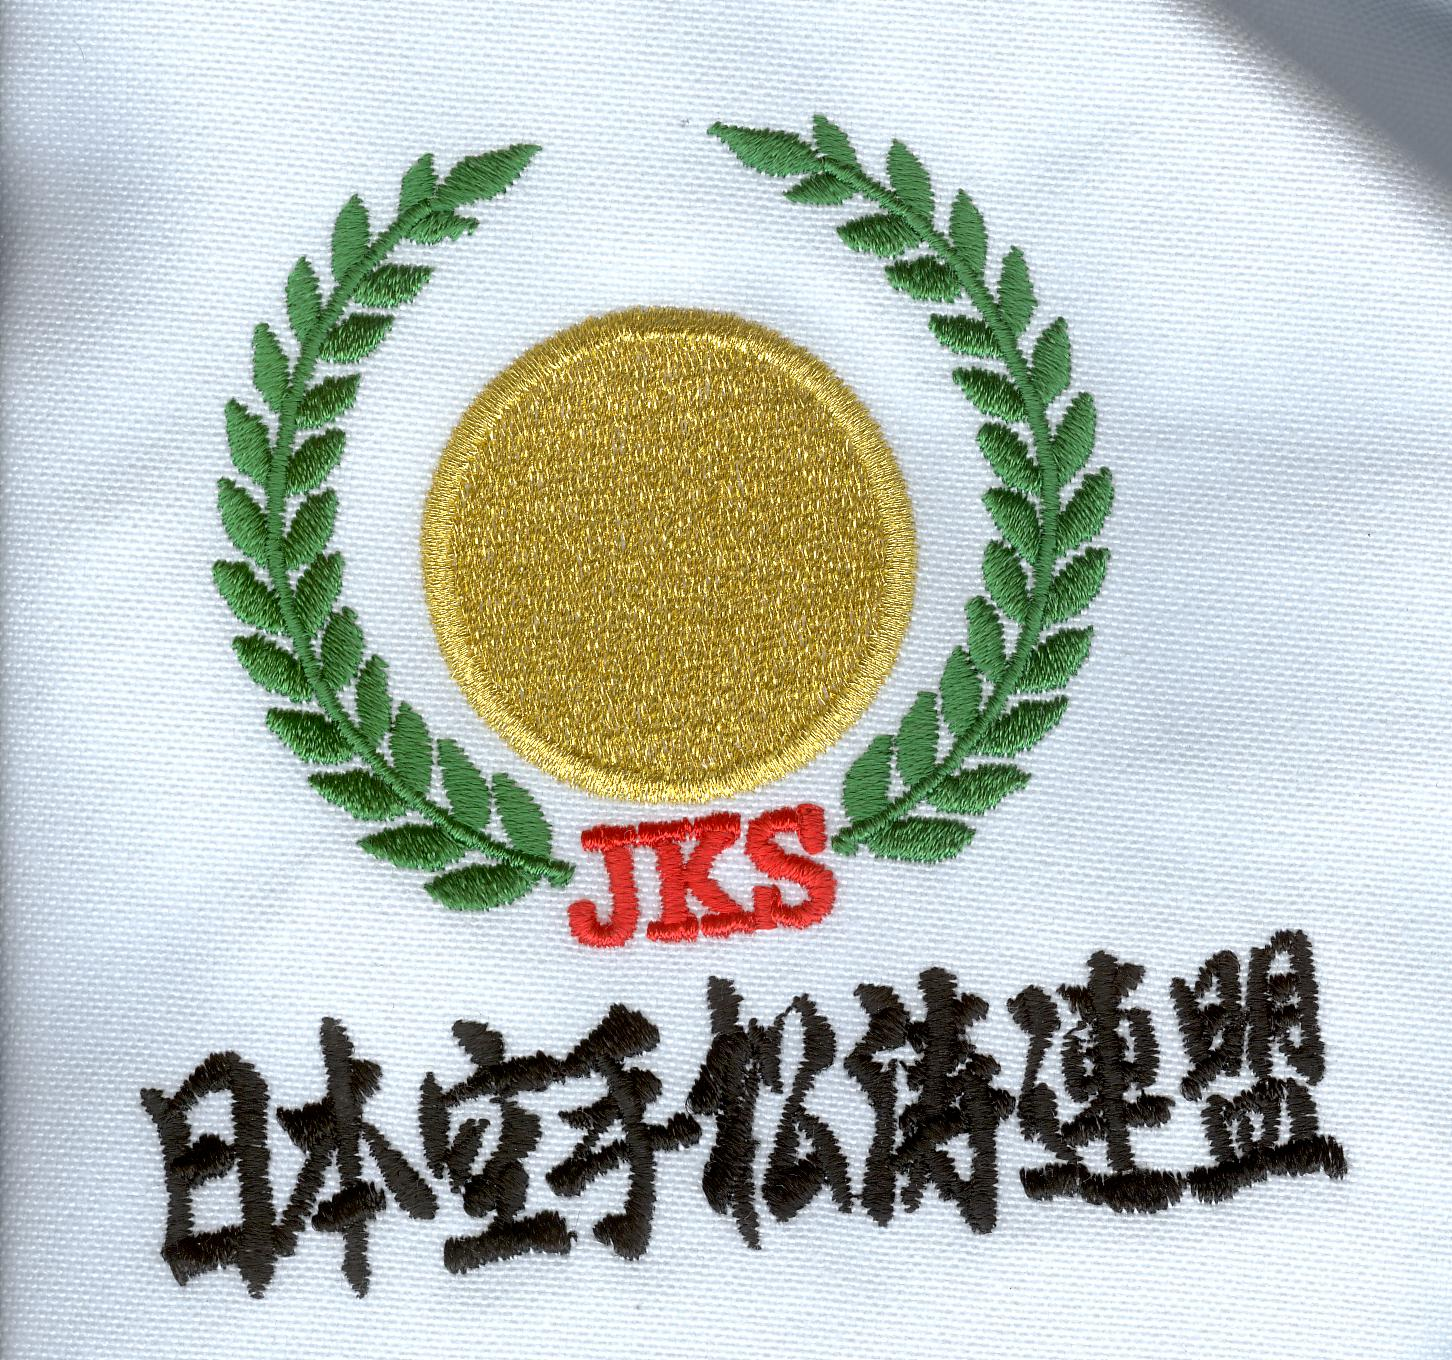 Hirota JKS Chest embroidery